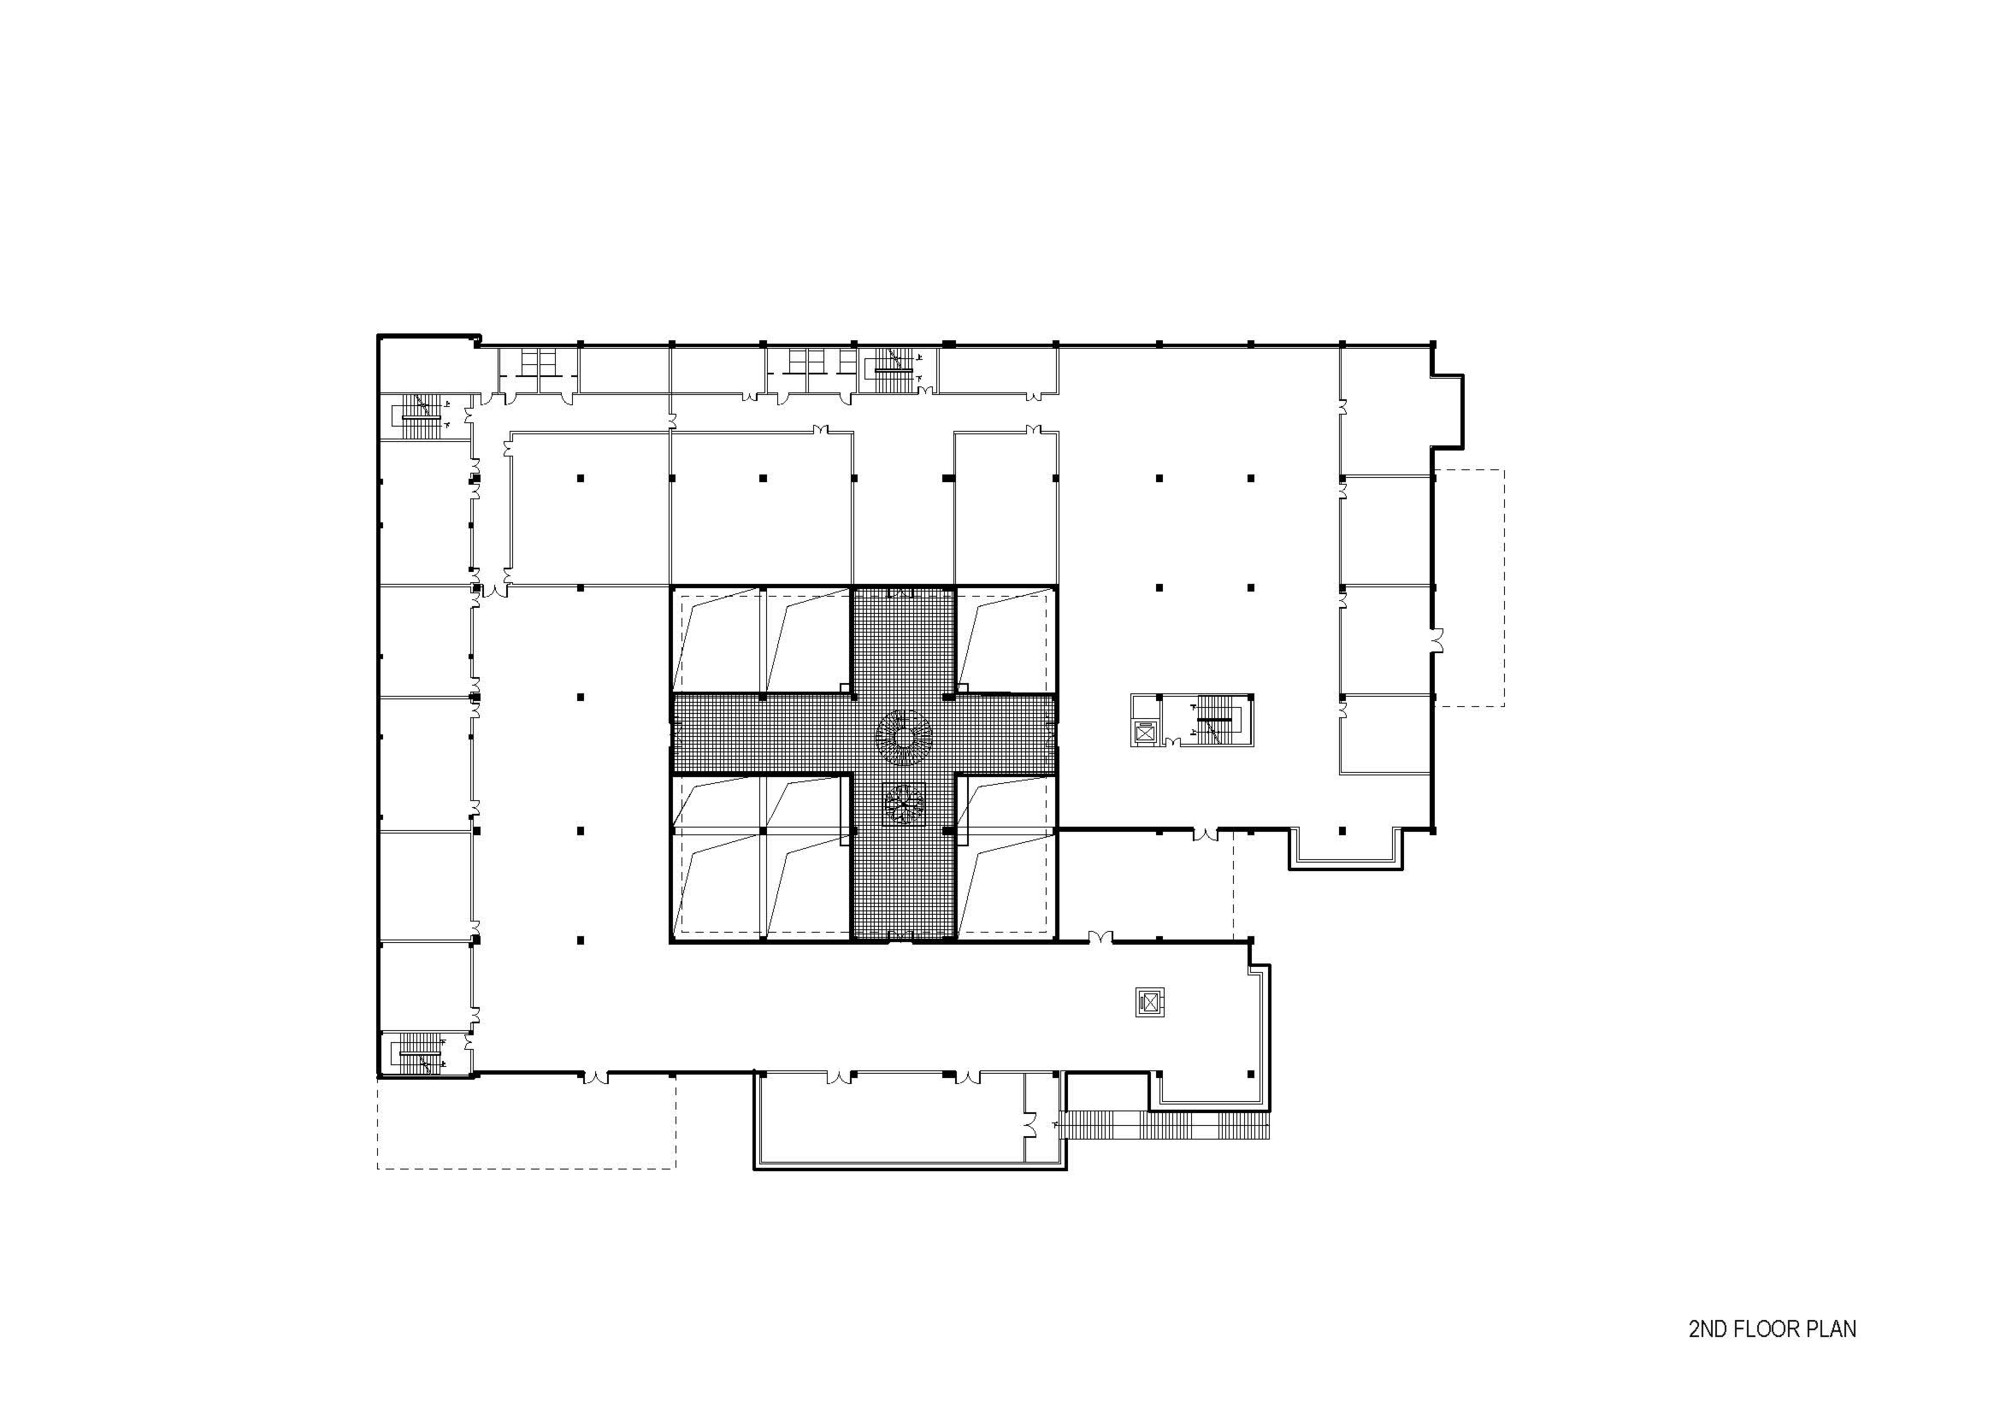 gallery architecture plan - photo #17